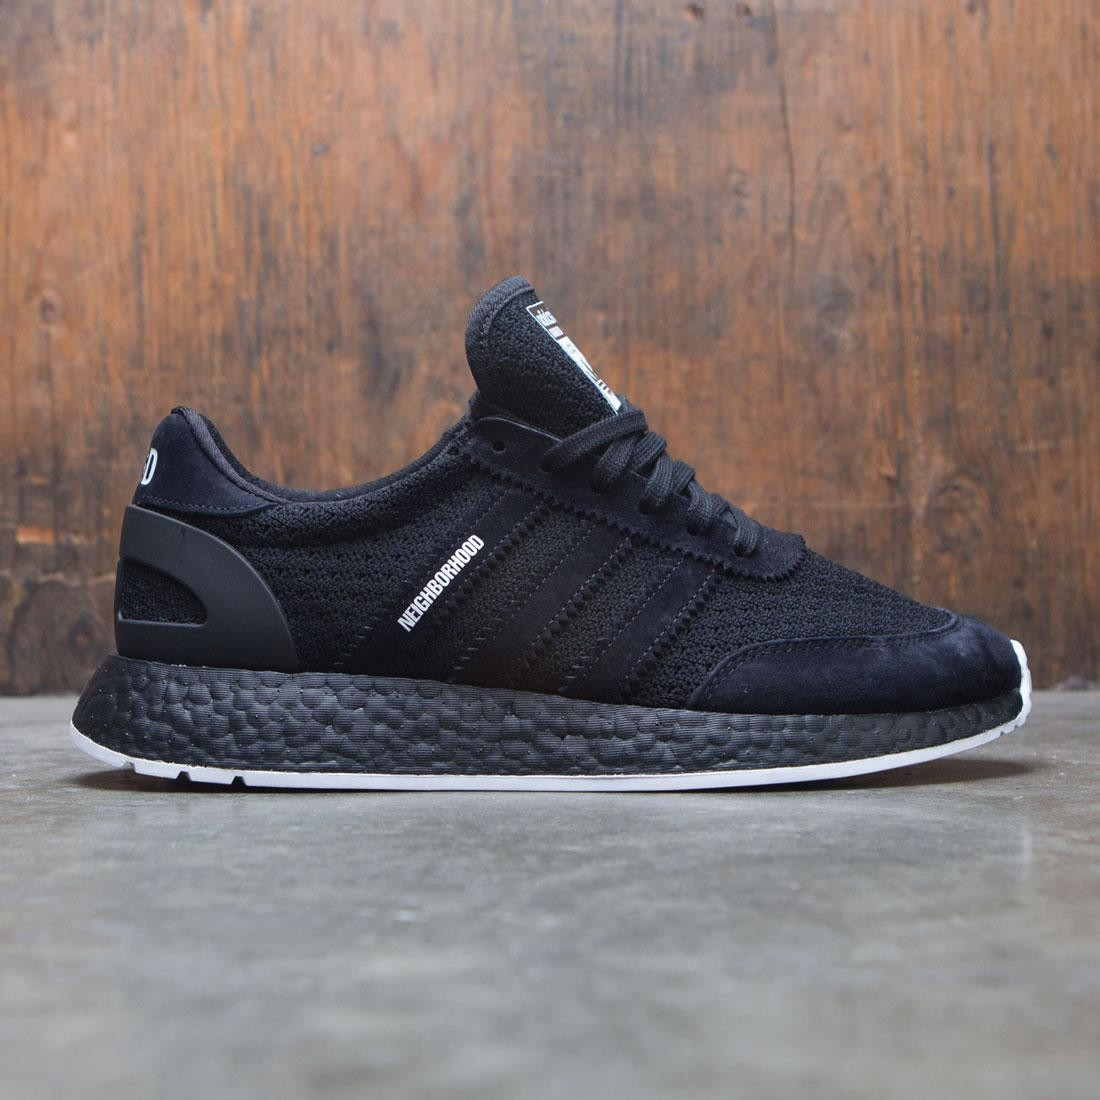 check out 8ec67 0e30a Adidas x Neighborhood Men I-5923 black core black footwear white